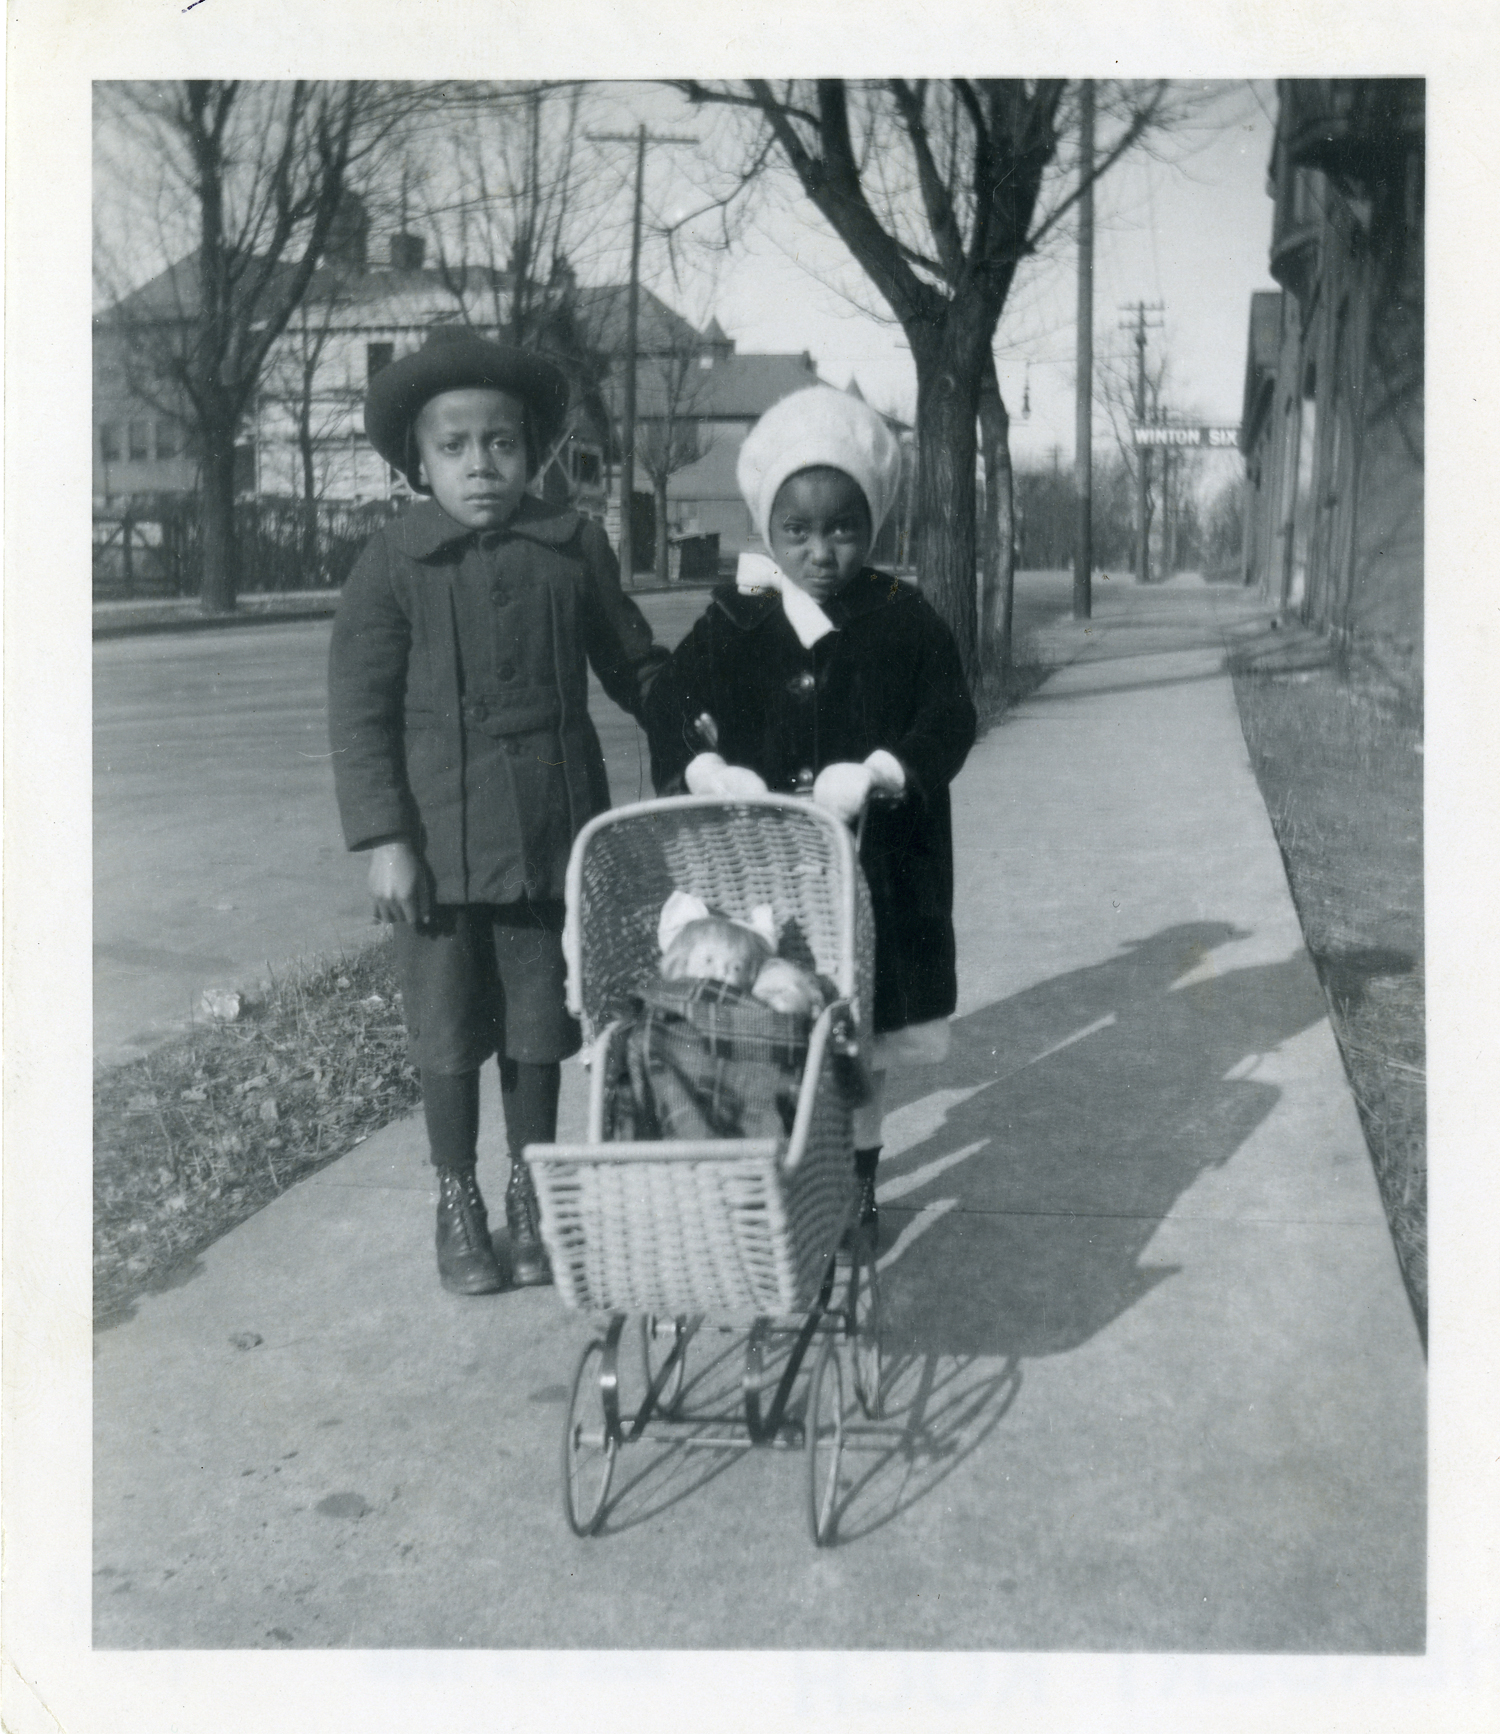 Felix J. Koch, Children with Toys, Walnut Hills, January 2, 1921. Gelatin silver print, 4 x 5 inches. Courtesy of Cincinnati Museum Center History Library and Archives